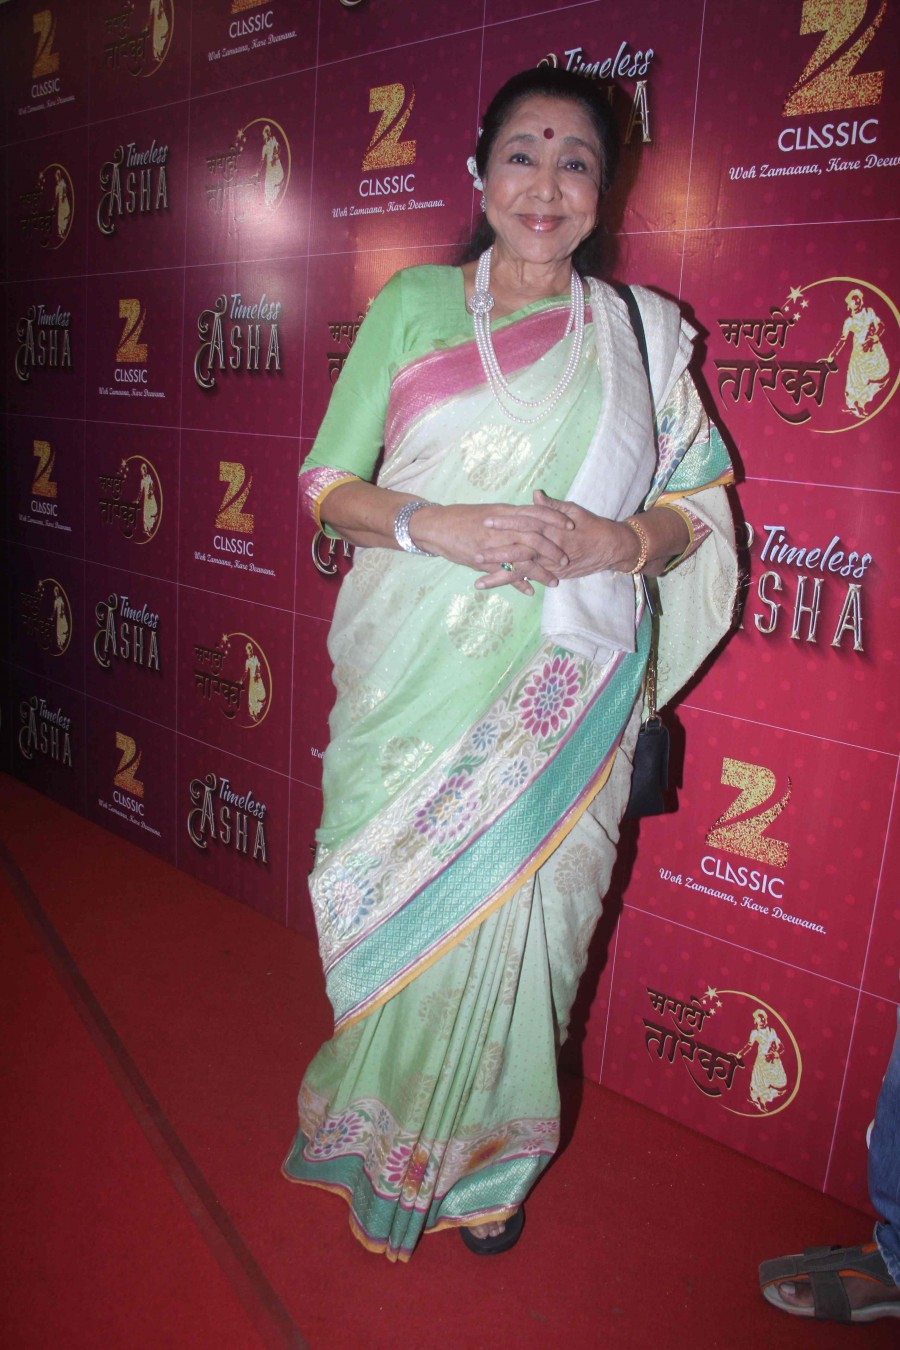 Asha Bhosle,singer,Asha Bhosle birthday,Asha Bhosle birthday celebrations,Asha Bhosle birthday celebrations pics,Asha Bhosle birthday celebrations images,Asha Bhosle birthday celebrations photos,Asha Bhosle birthday celebrations stills,Asha Bhosle birthda